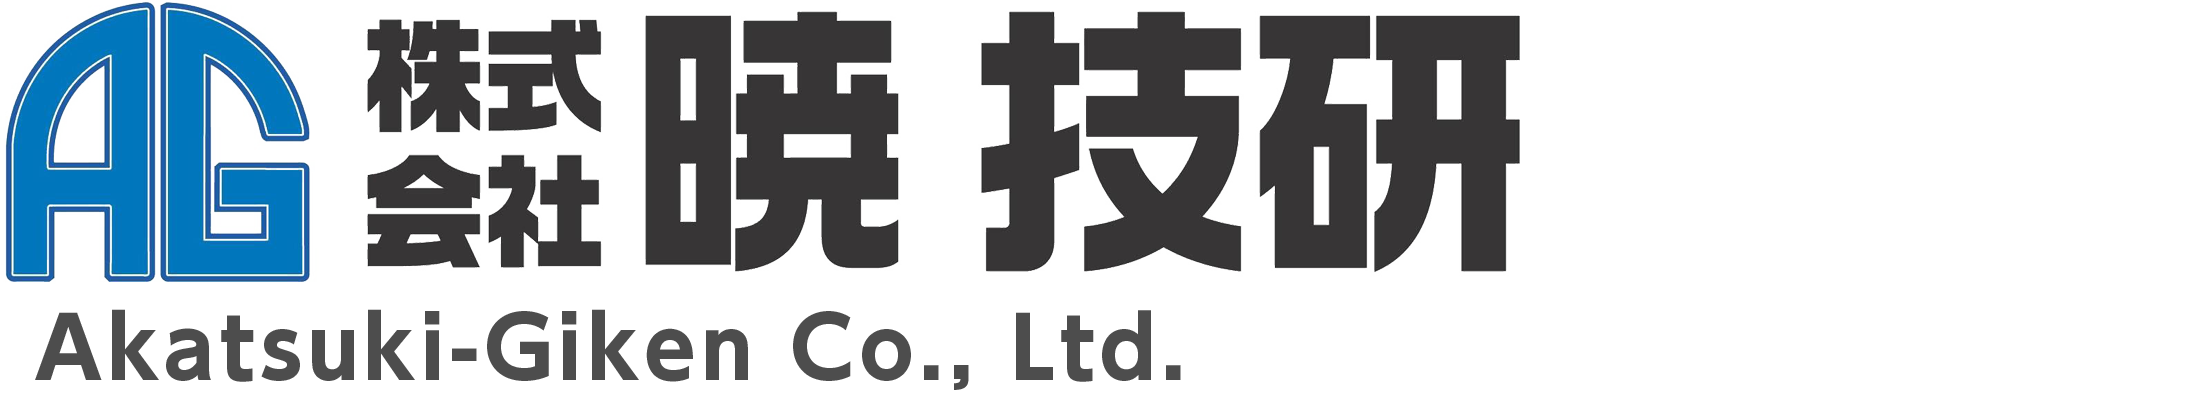 Akatsuki-Giken Co., Ltd.